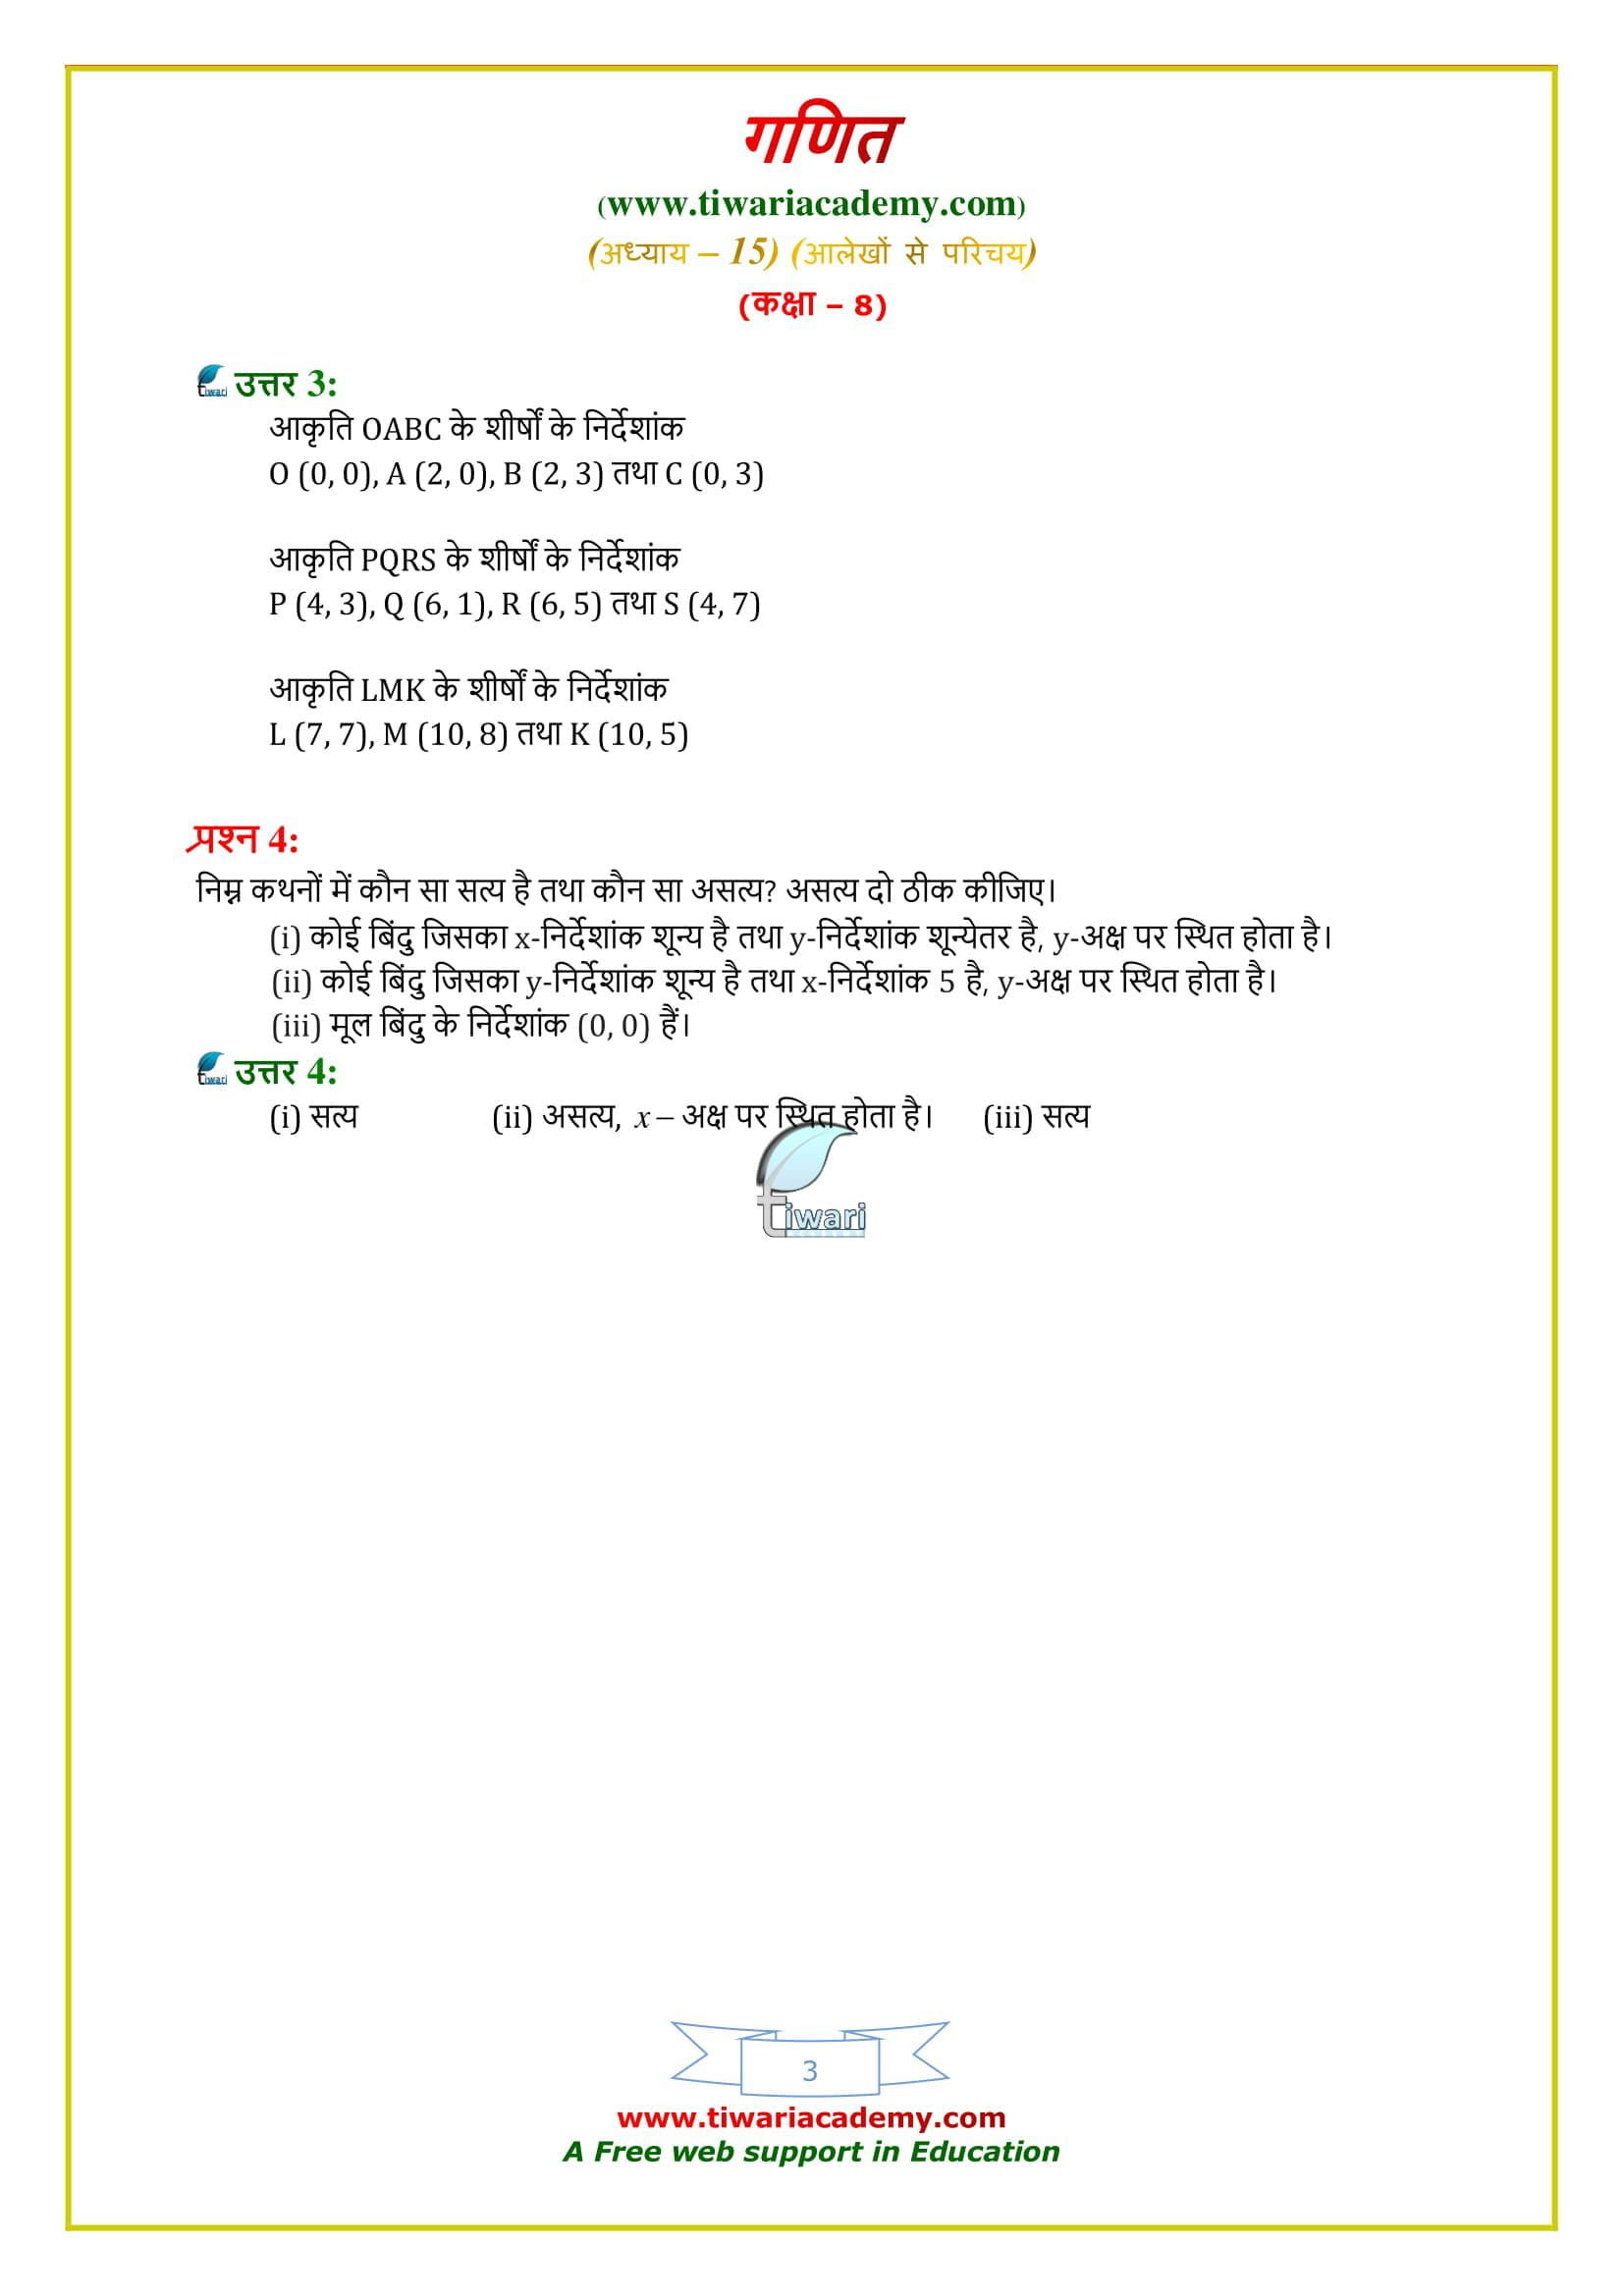 8 Maths Exercise 15.2 solutions in hindi medium in pdf